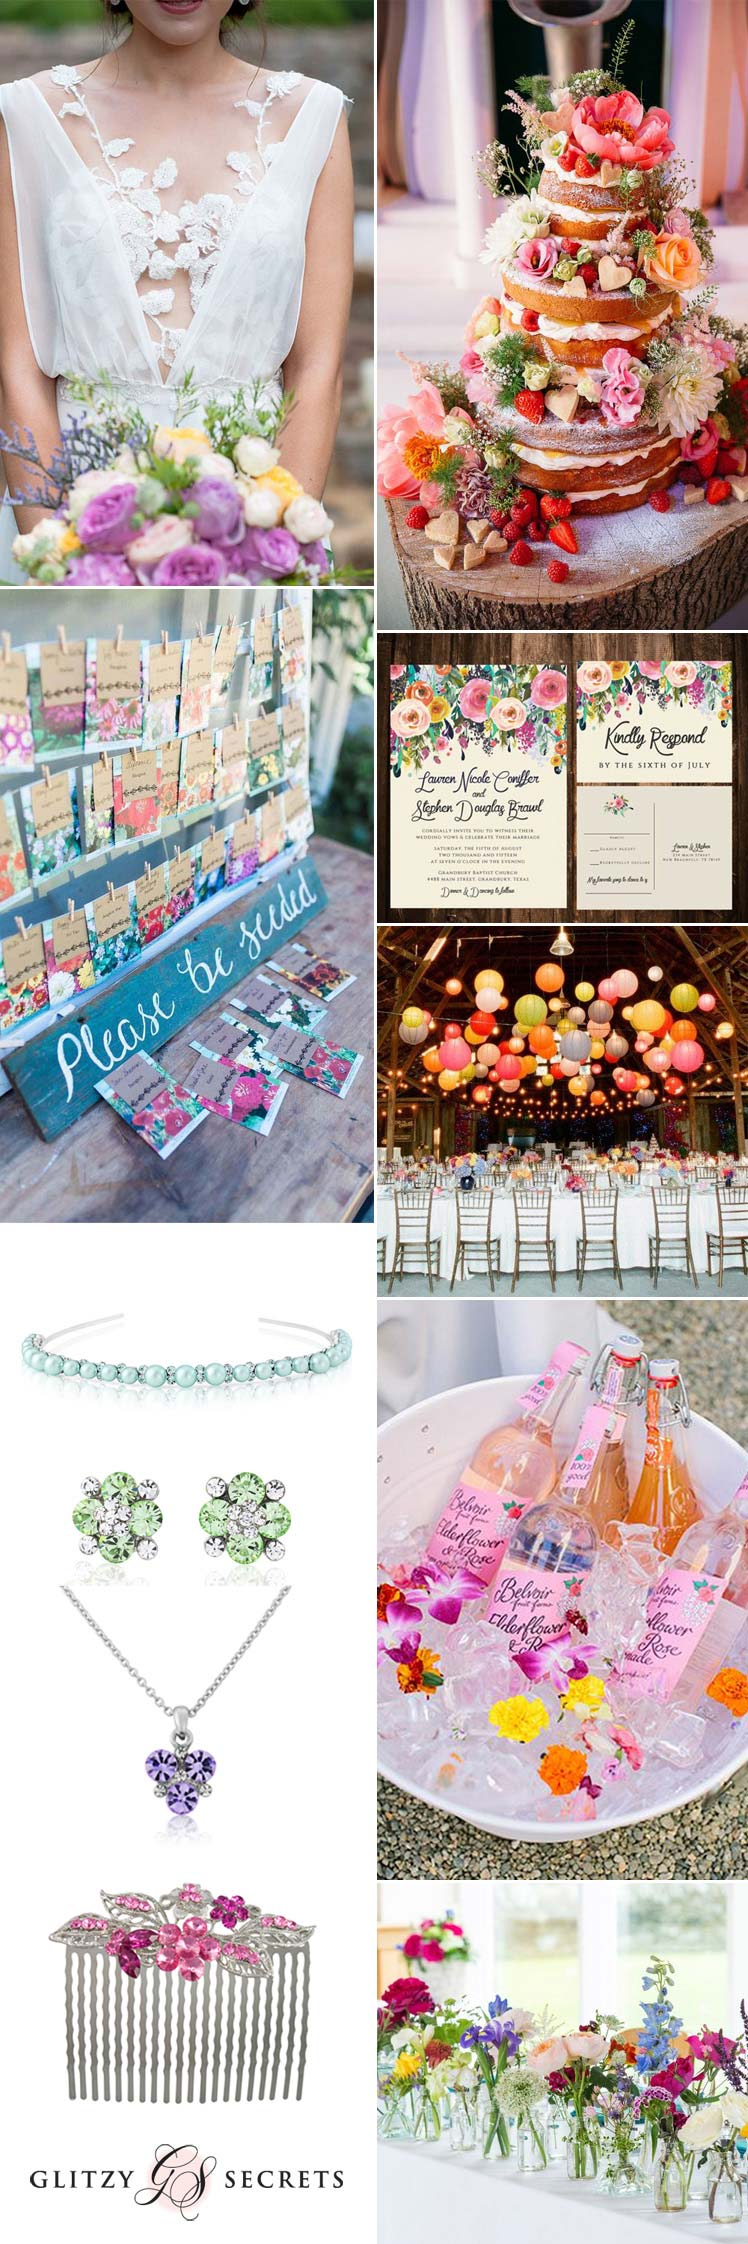 beautiful spring wedding inspiration